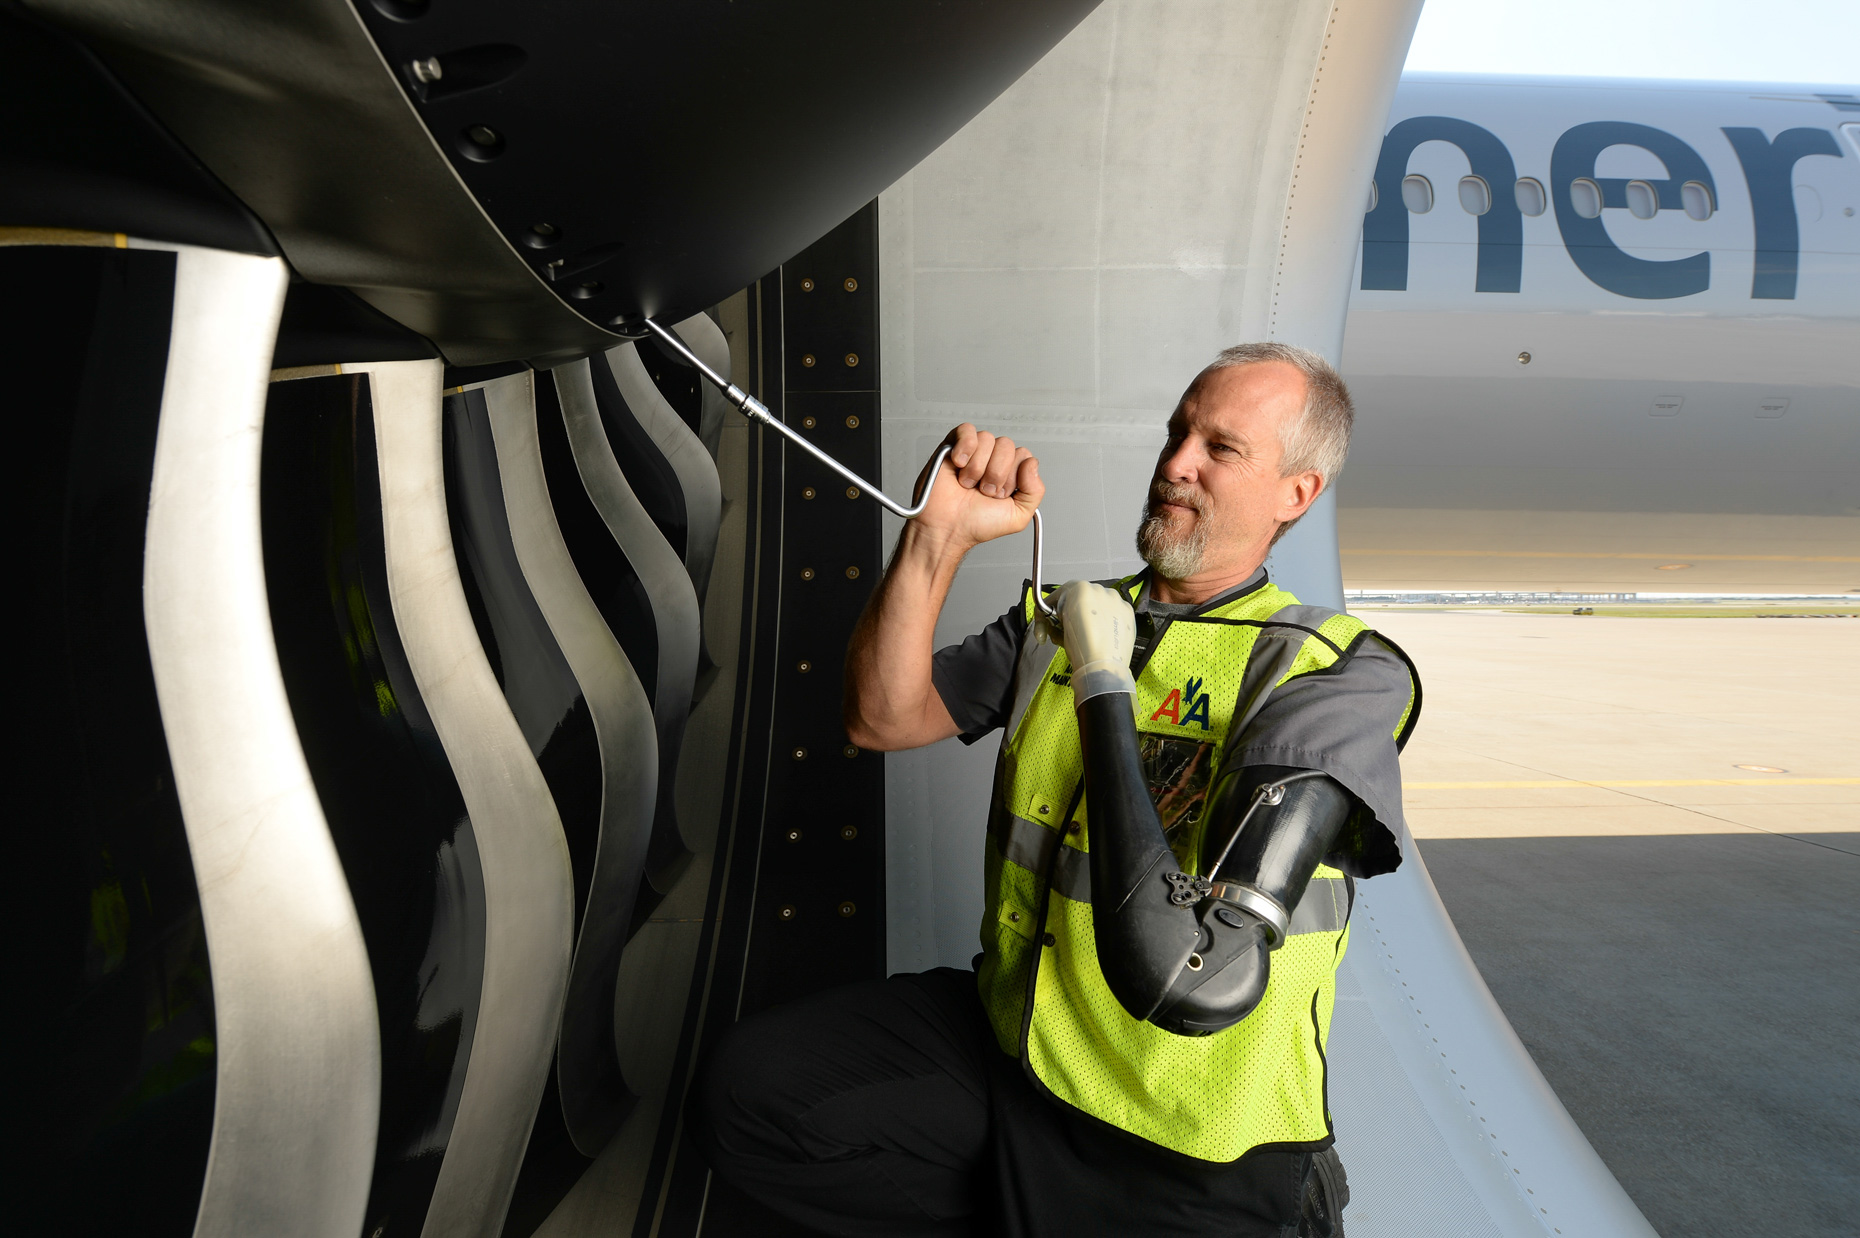 Mechanic for American Airlines at work on an engine at DFW Airport by Kevin Brown Photographer.